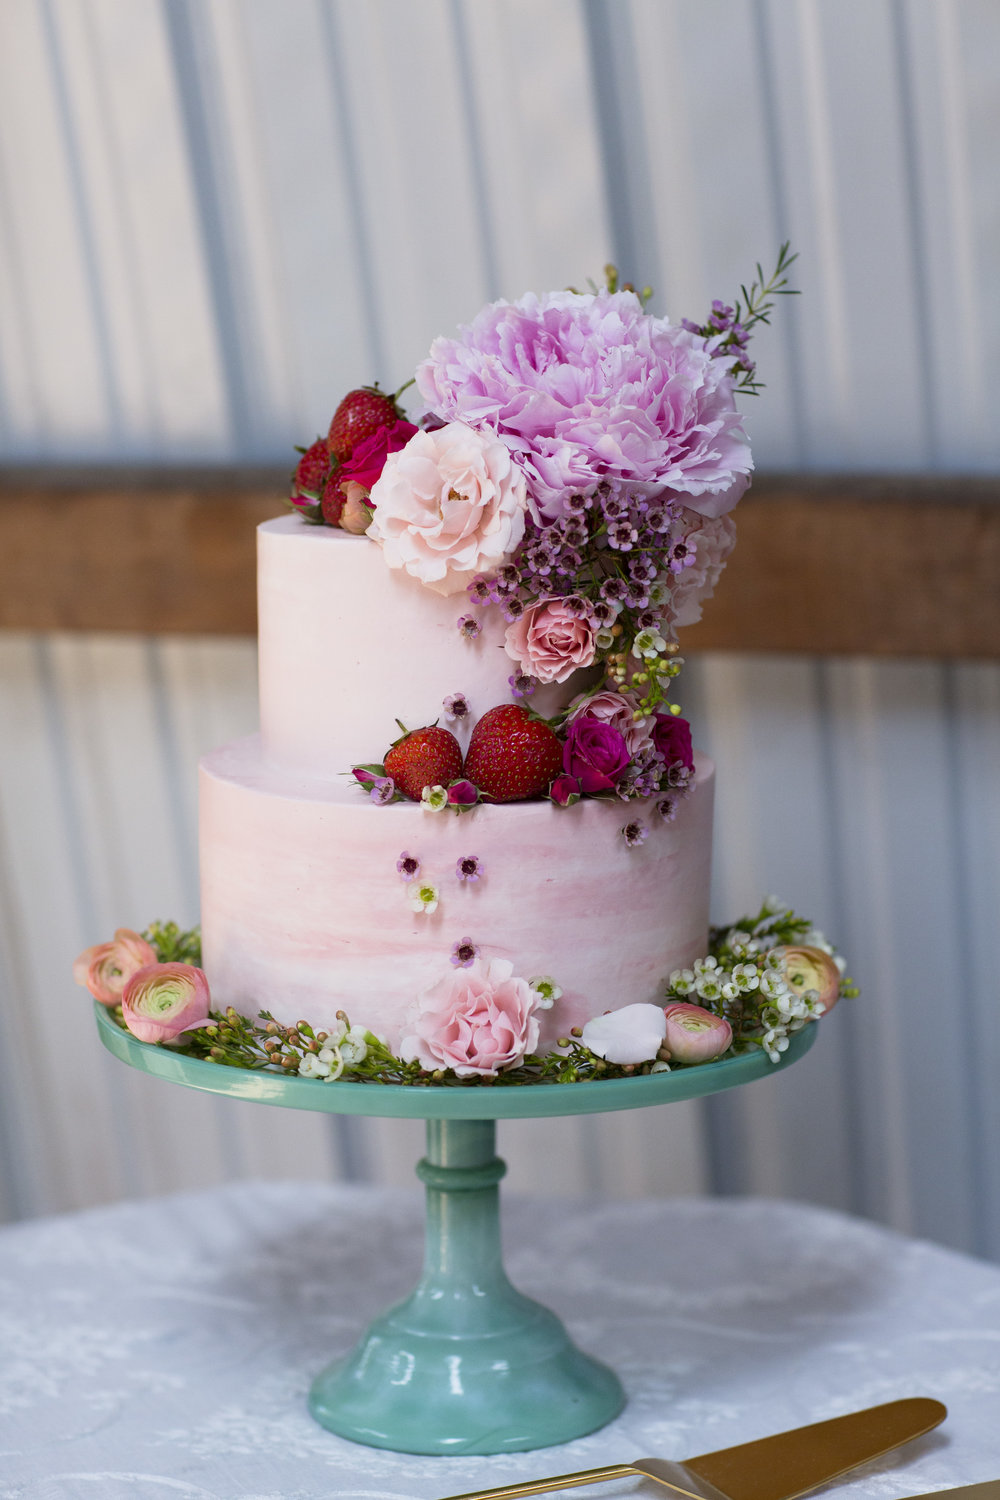 Summer Strawberry Cake, Everbreeze Farm